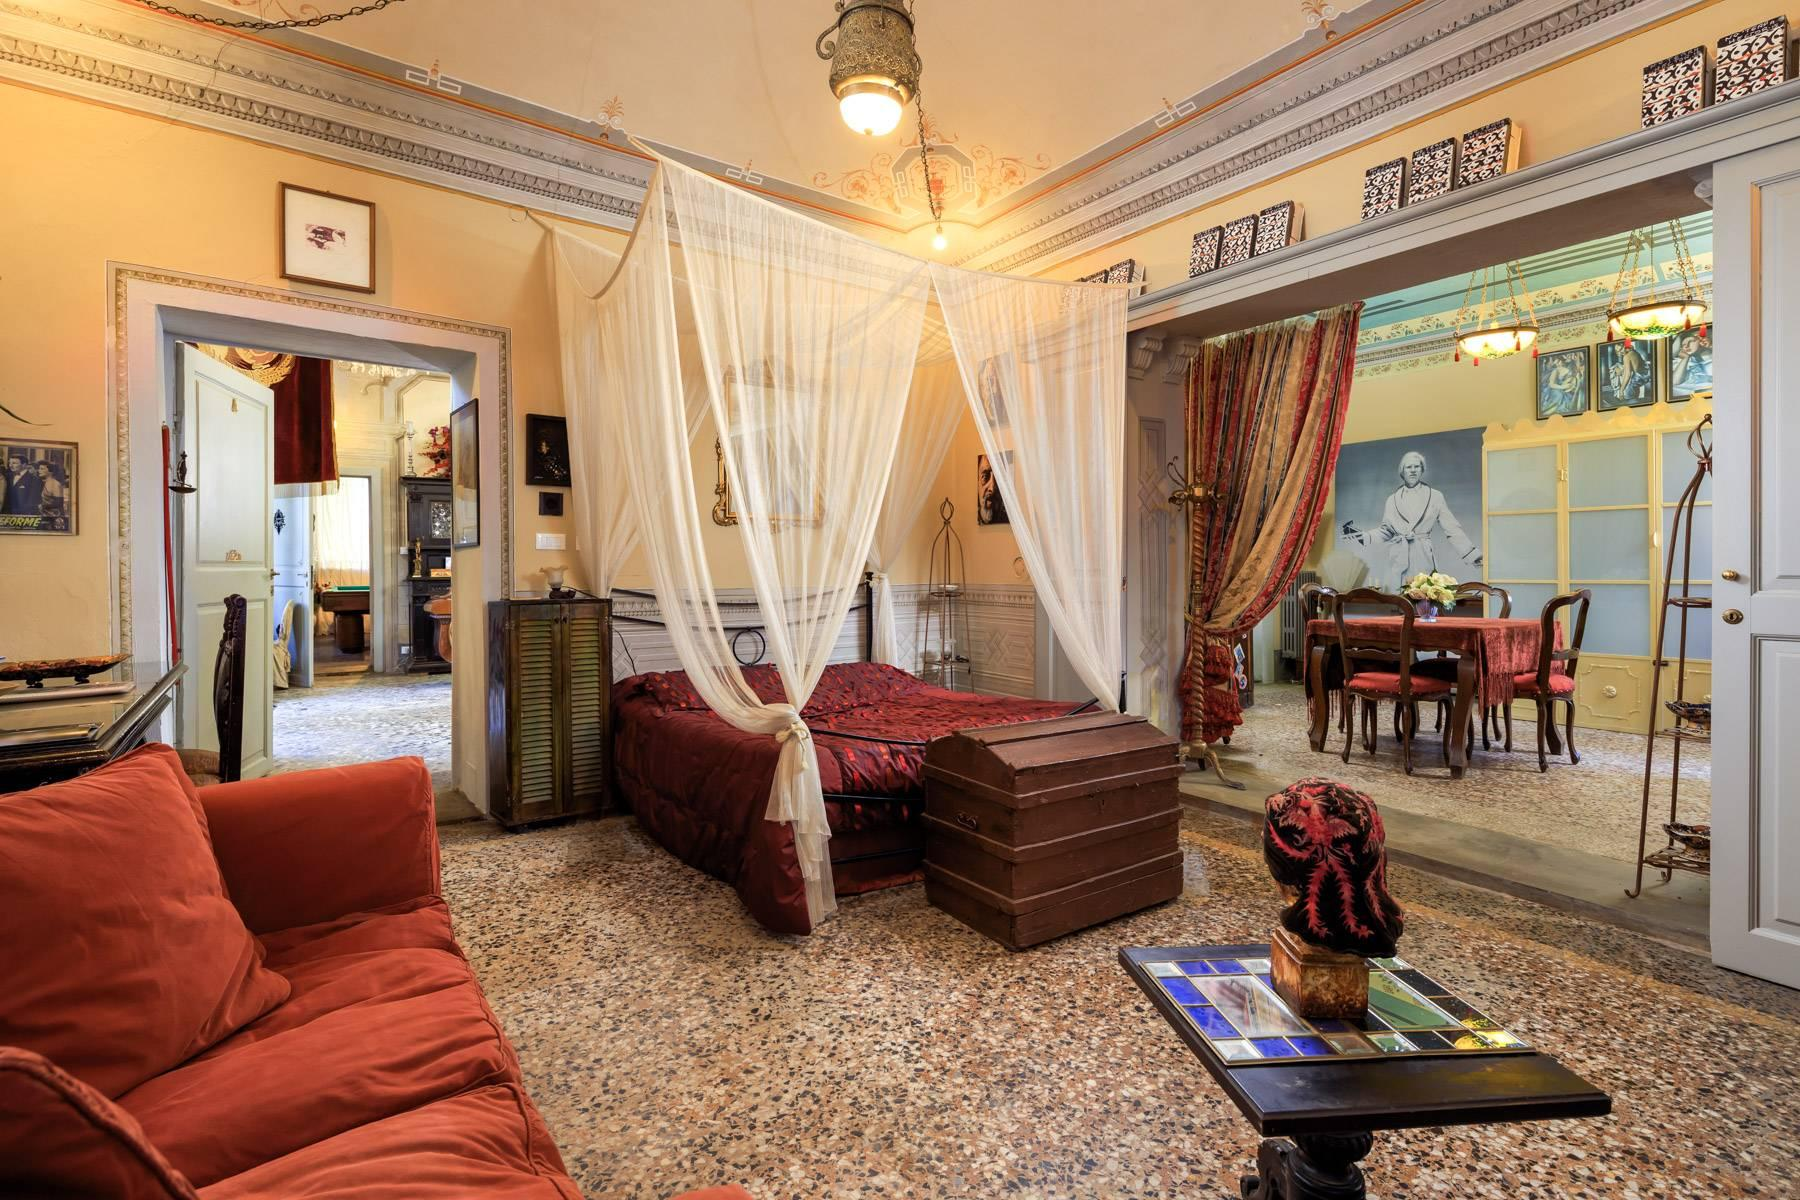 Romantic villa for sale in Pisa - 22